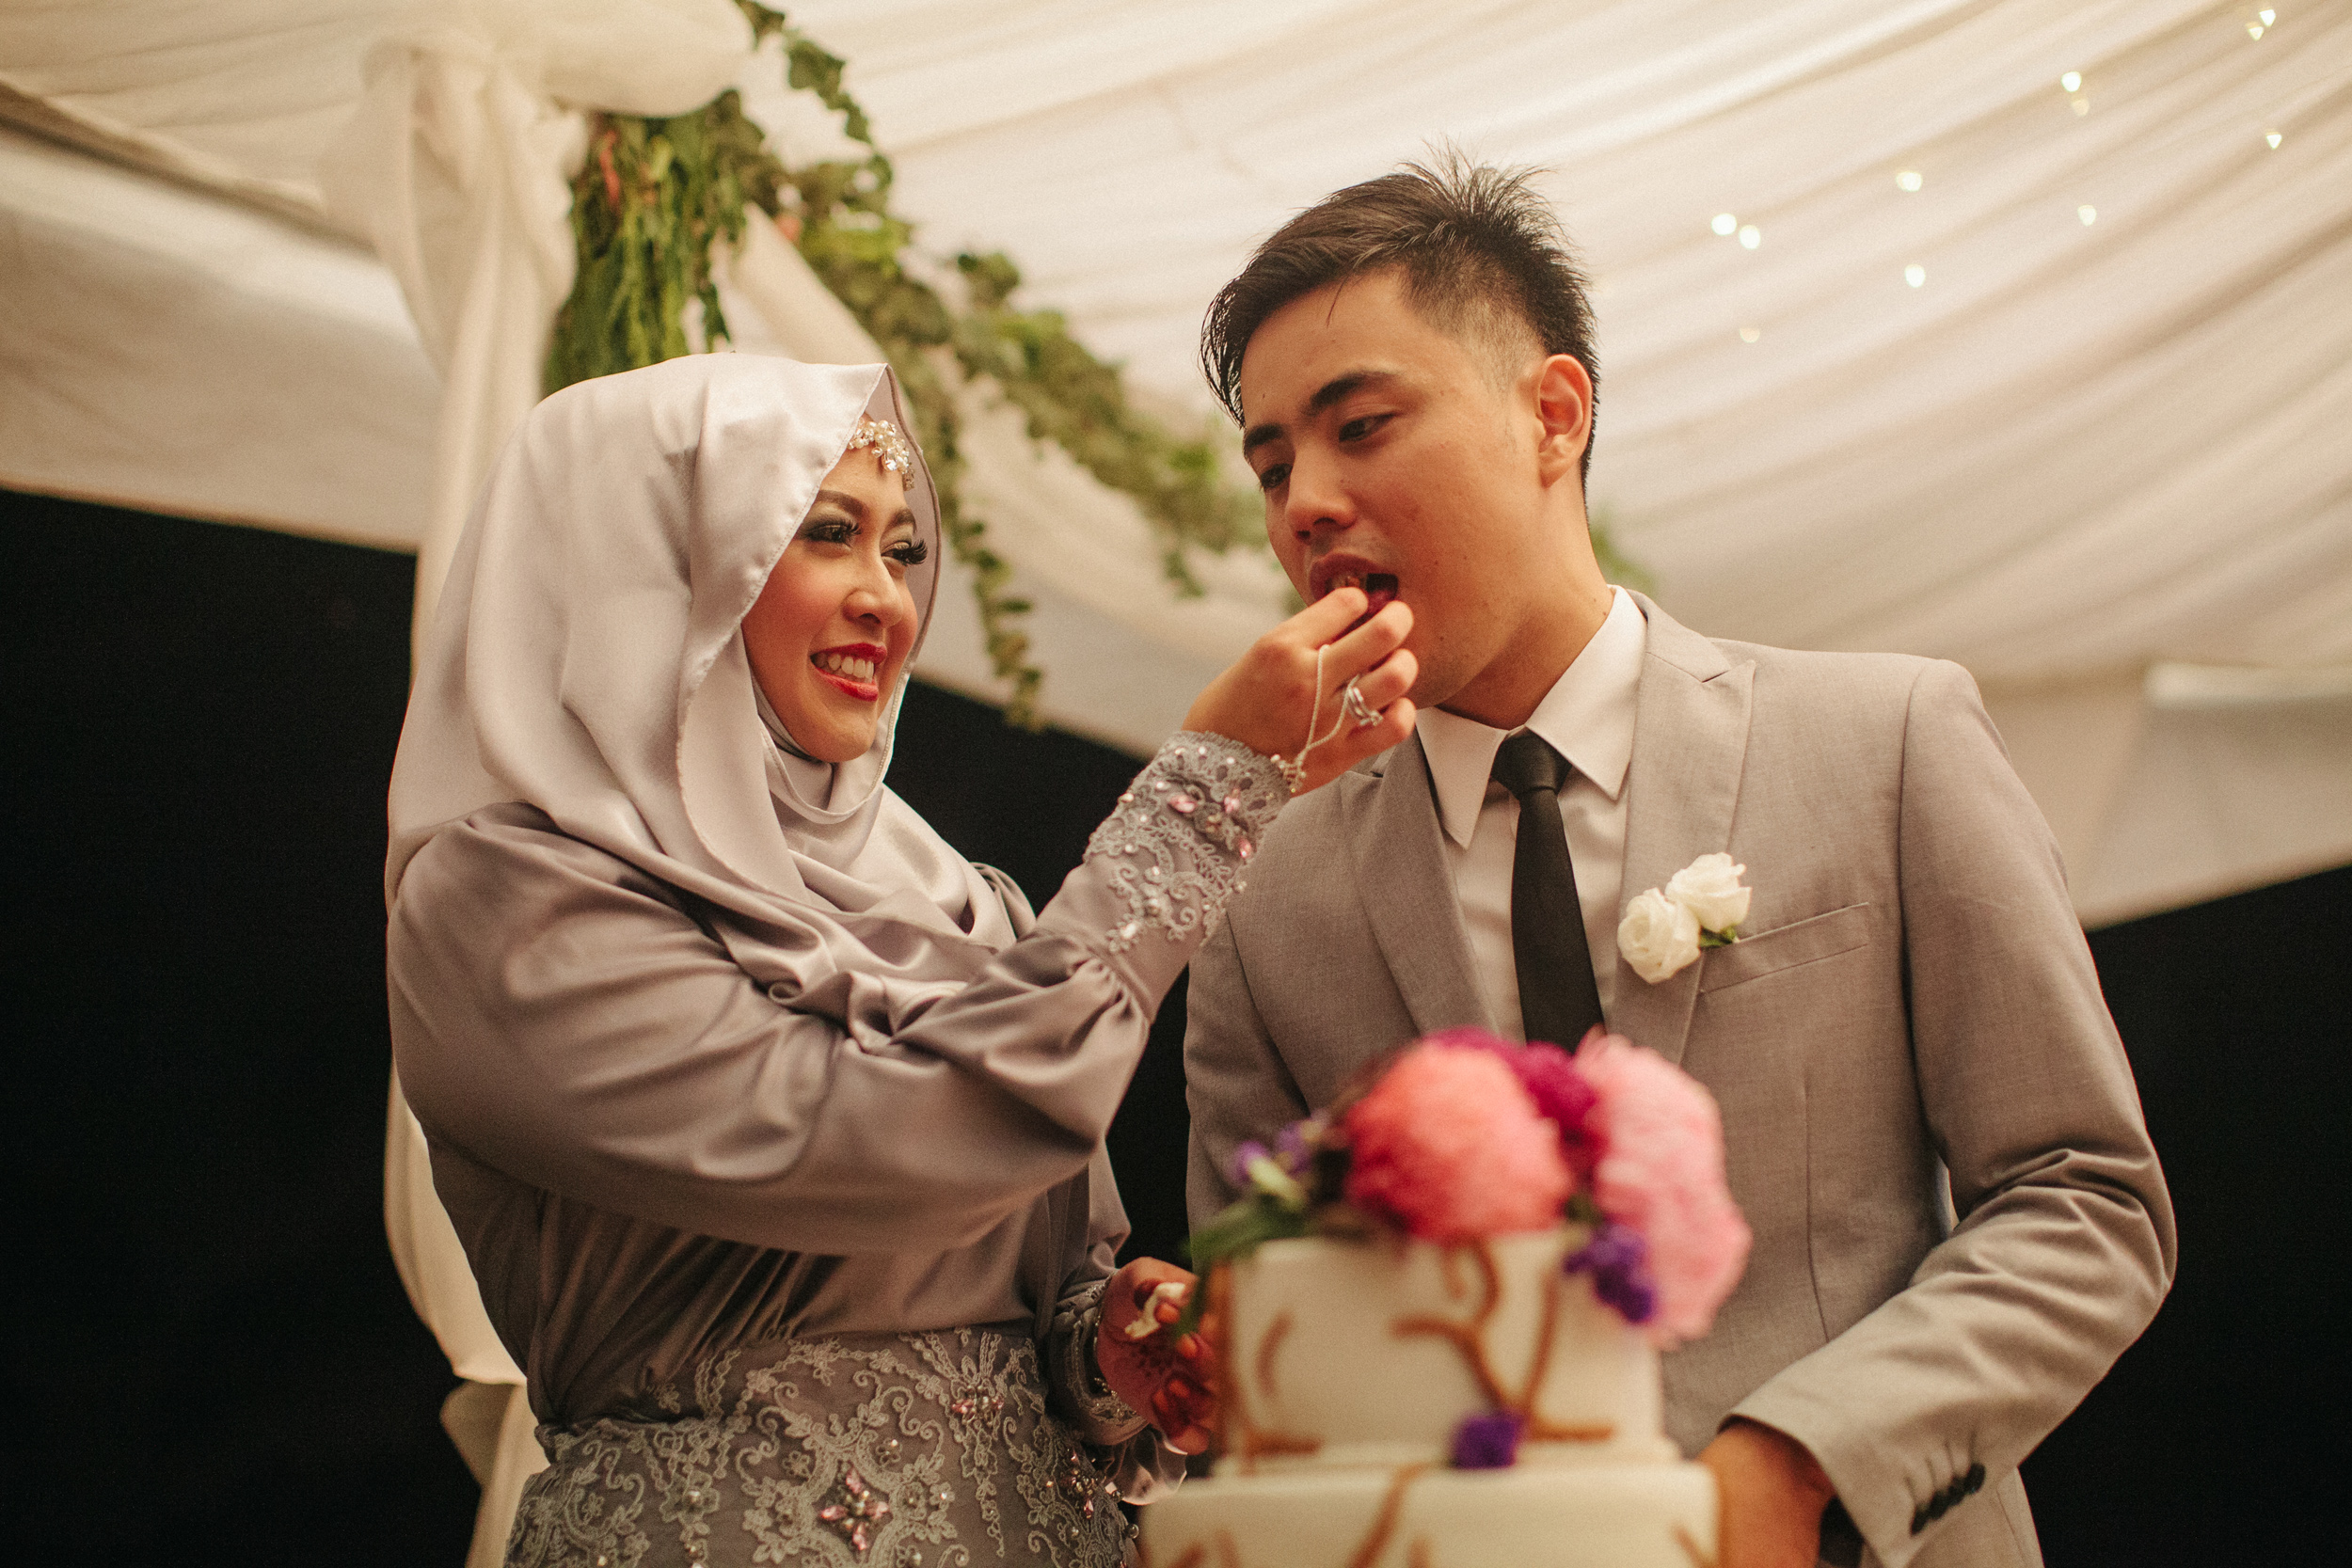 singapore-wedding-photographer-wemadethese-aisyah-helmi-76.jpg